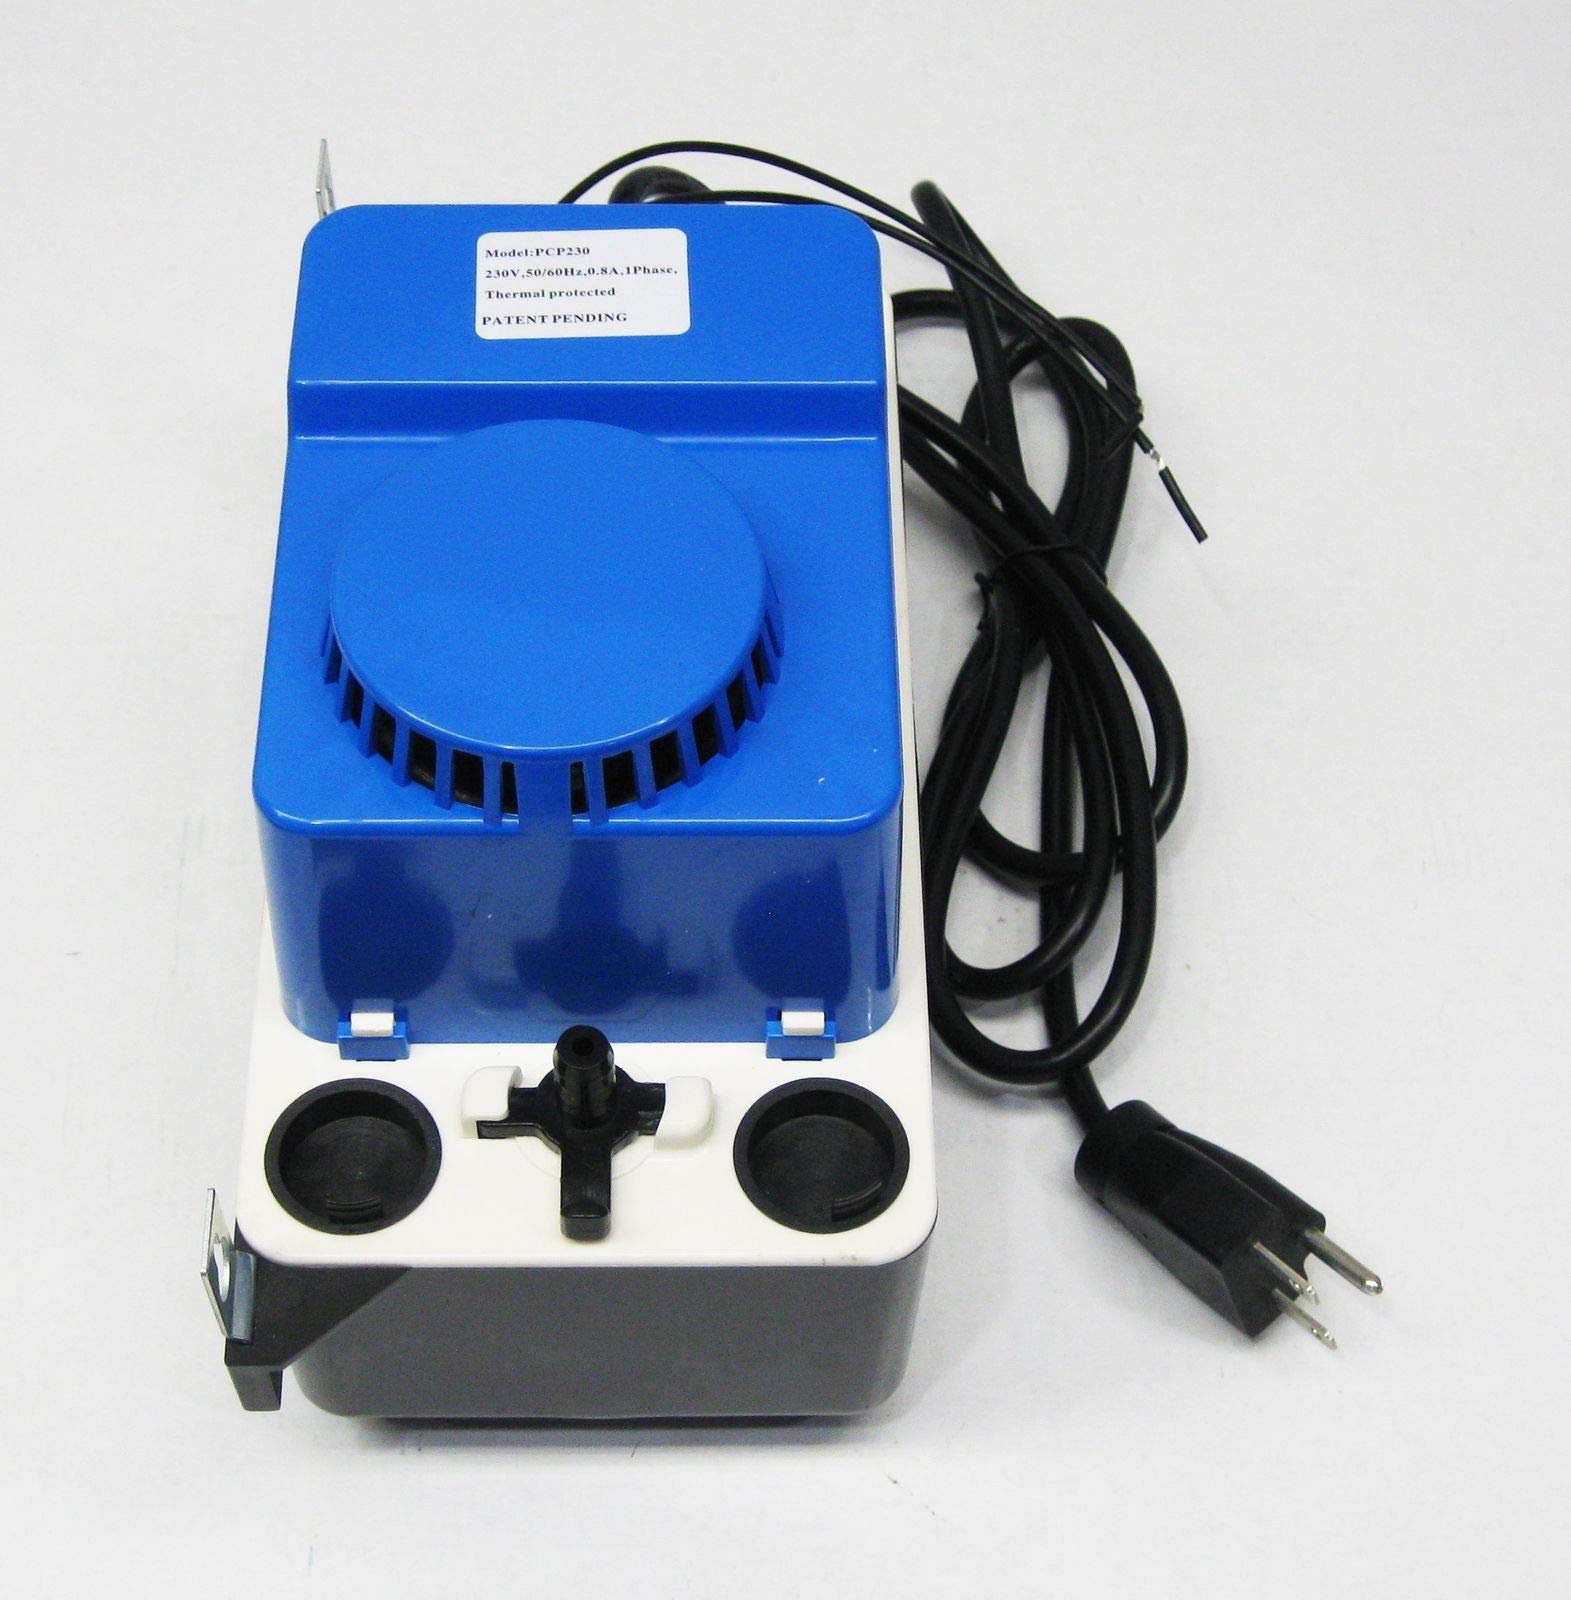 Air Conditioning Condensate Removal Pump with Safety Switch and Alarm 20 Lift